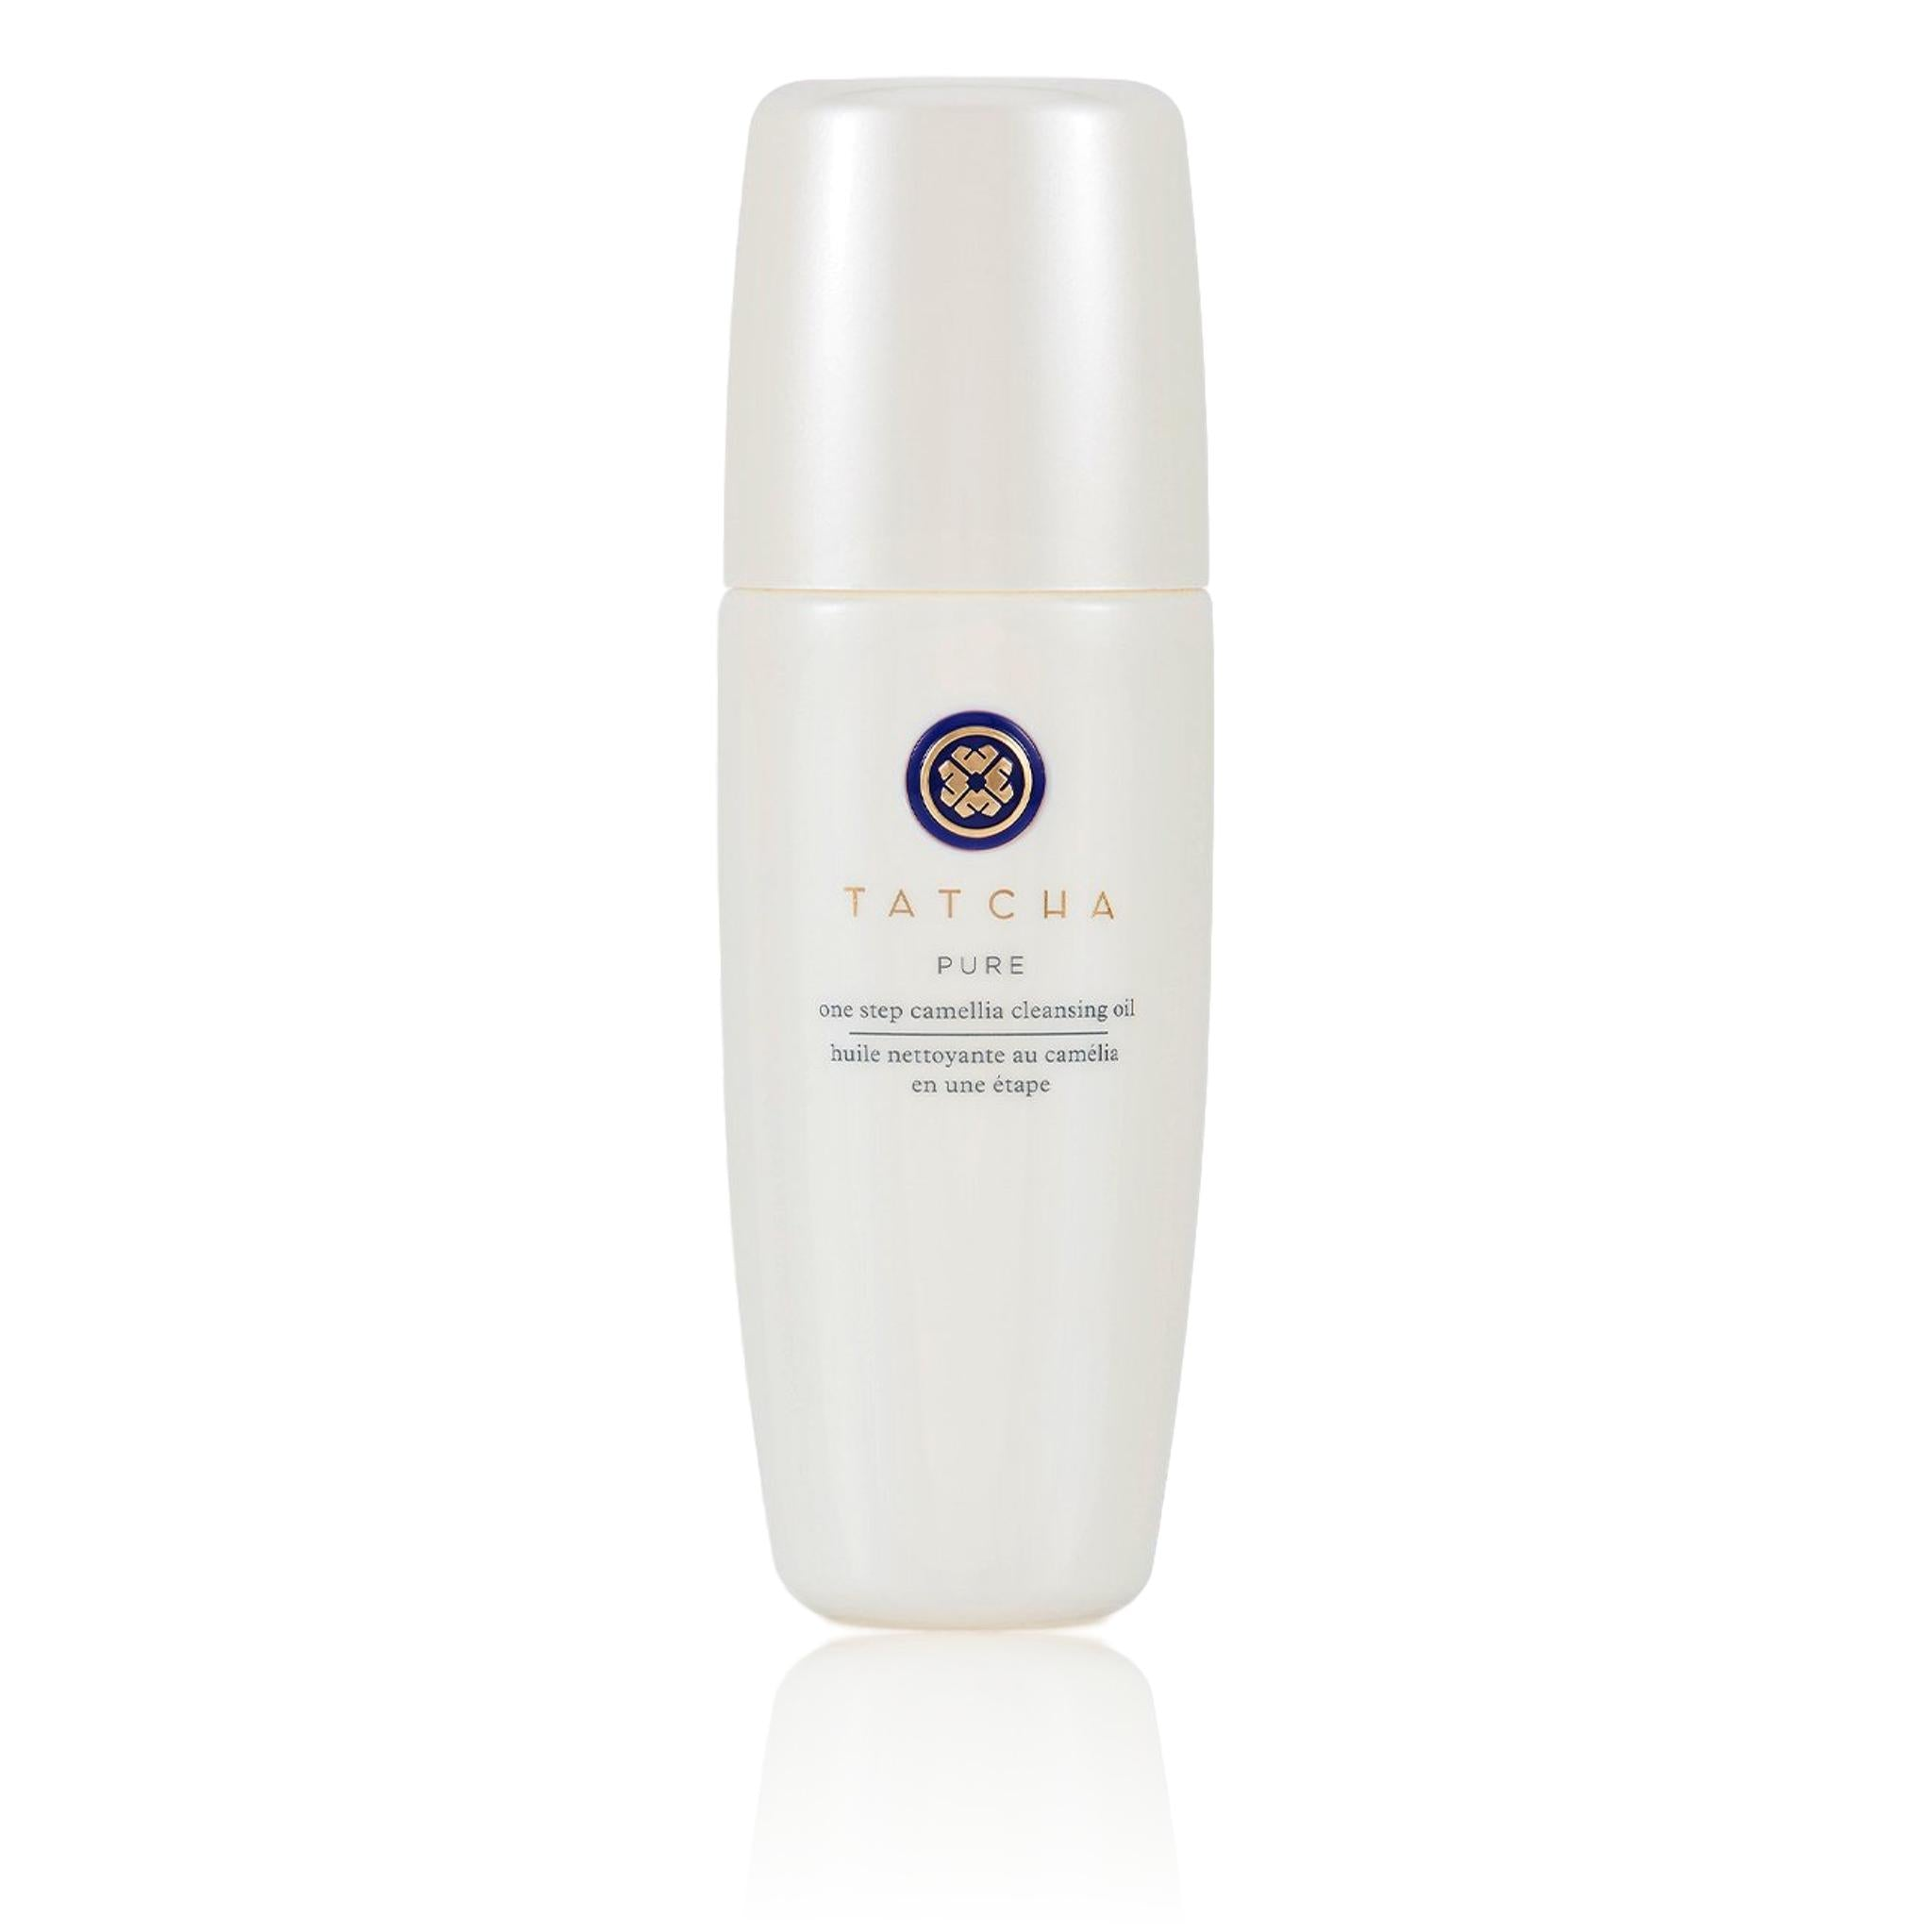 TATCHA Pure One Step Camellia Cleansing Oil - Gratitude Size - Limited Edition (10.0 oz | 300ml), Skin Care, London Loves Beauty